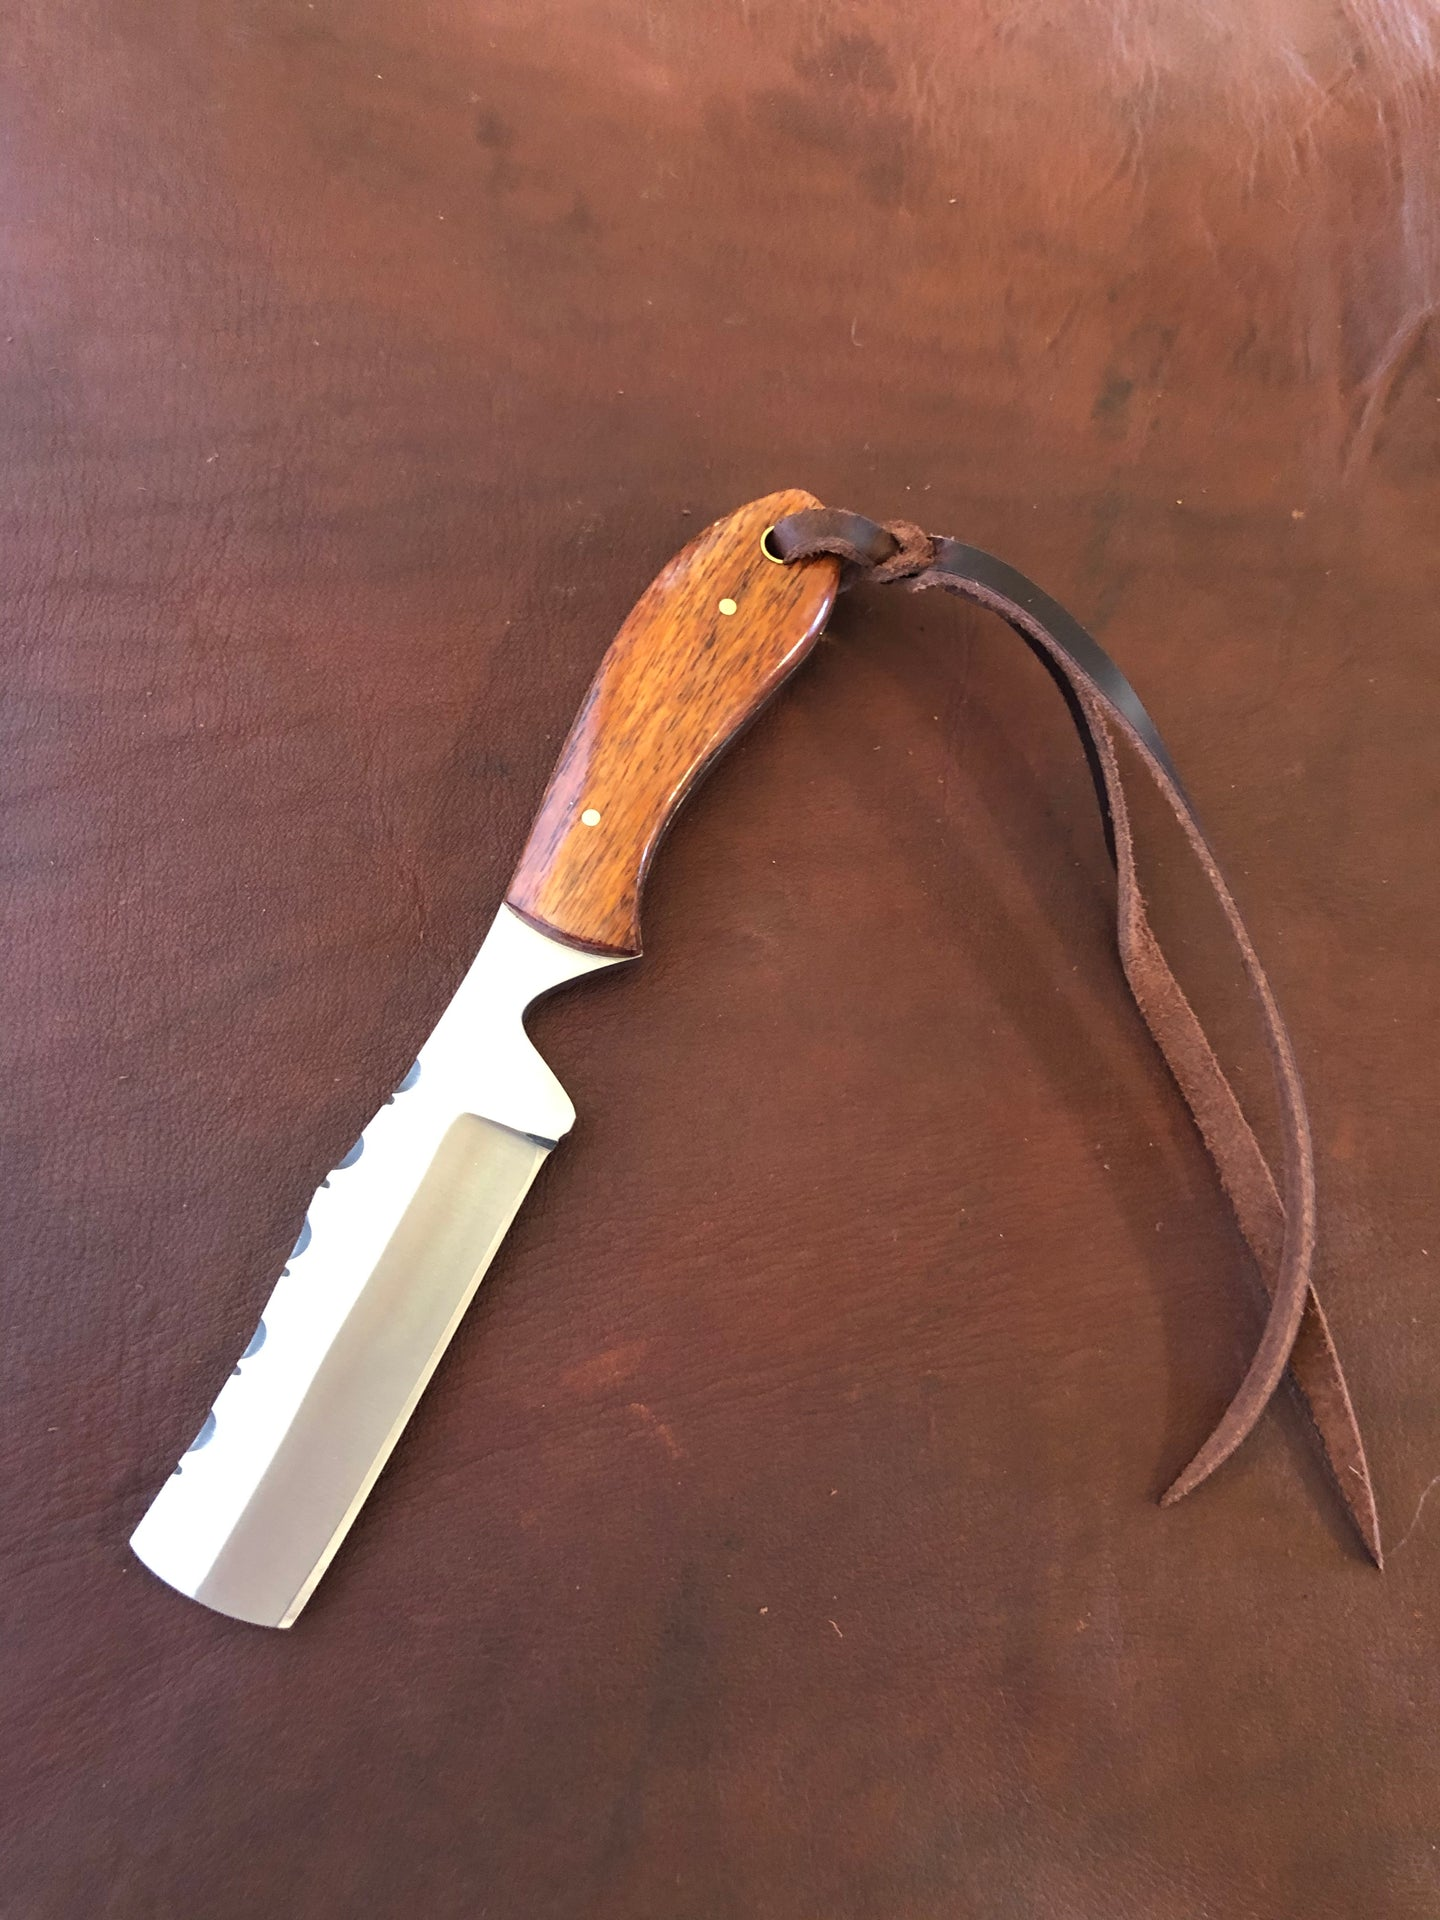 Nut Cutter Knife Brown